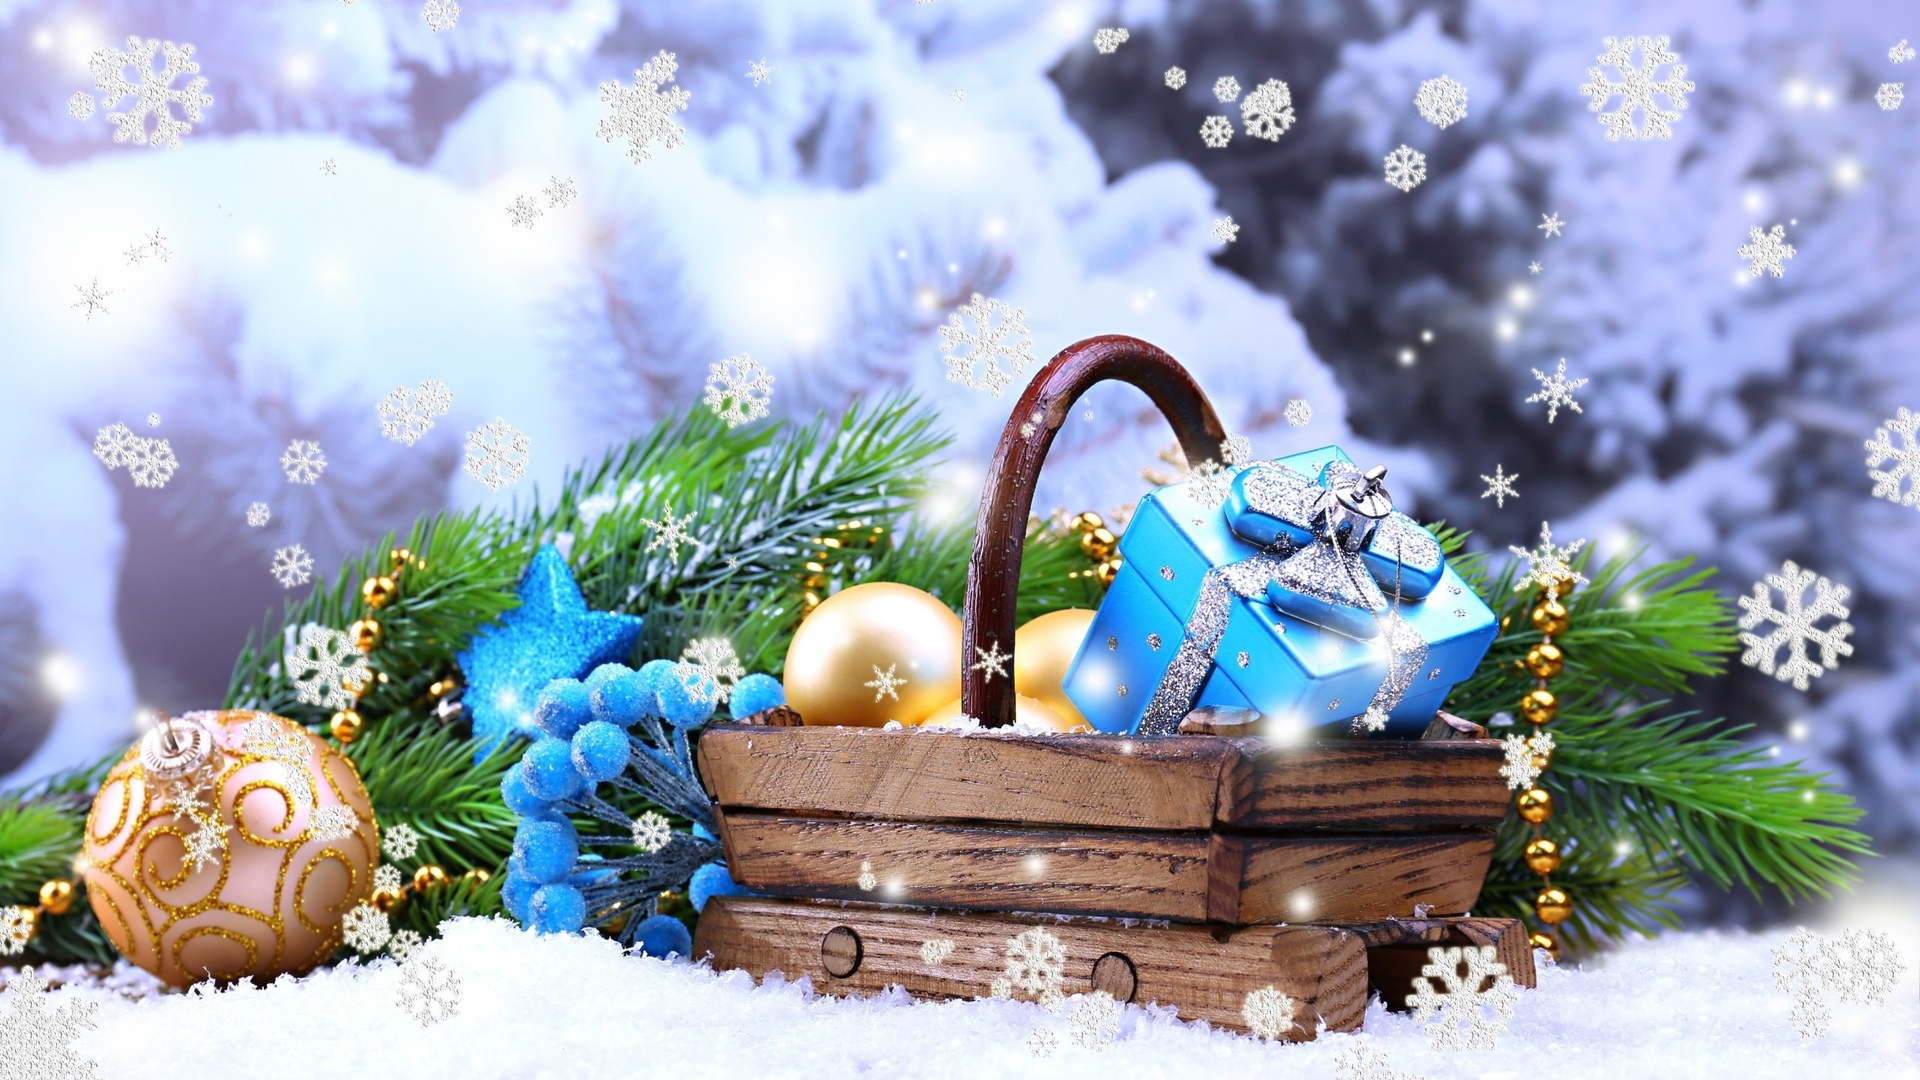 Holiday, New Year, Blue, Christmas Ornament, Christmas - Заставки На Рабочий Стол Компьютера , HD Wallpaper & Backgrounds